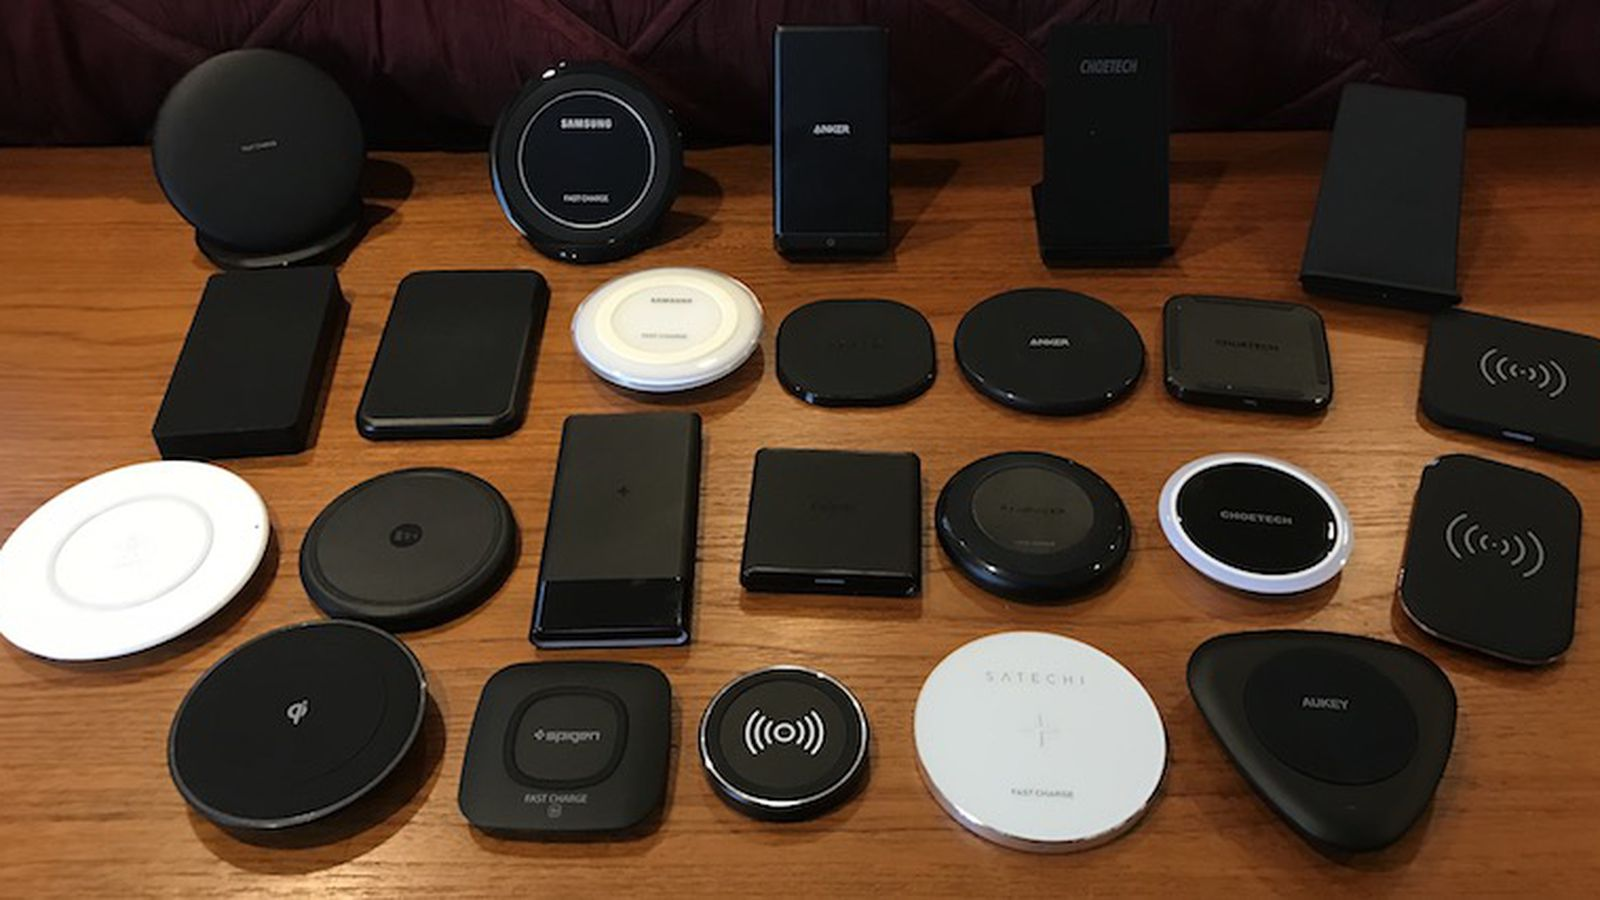 wireless chargers for iPhones and Android phones